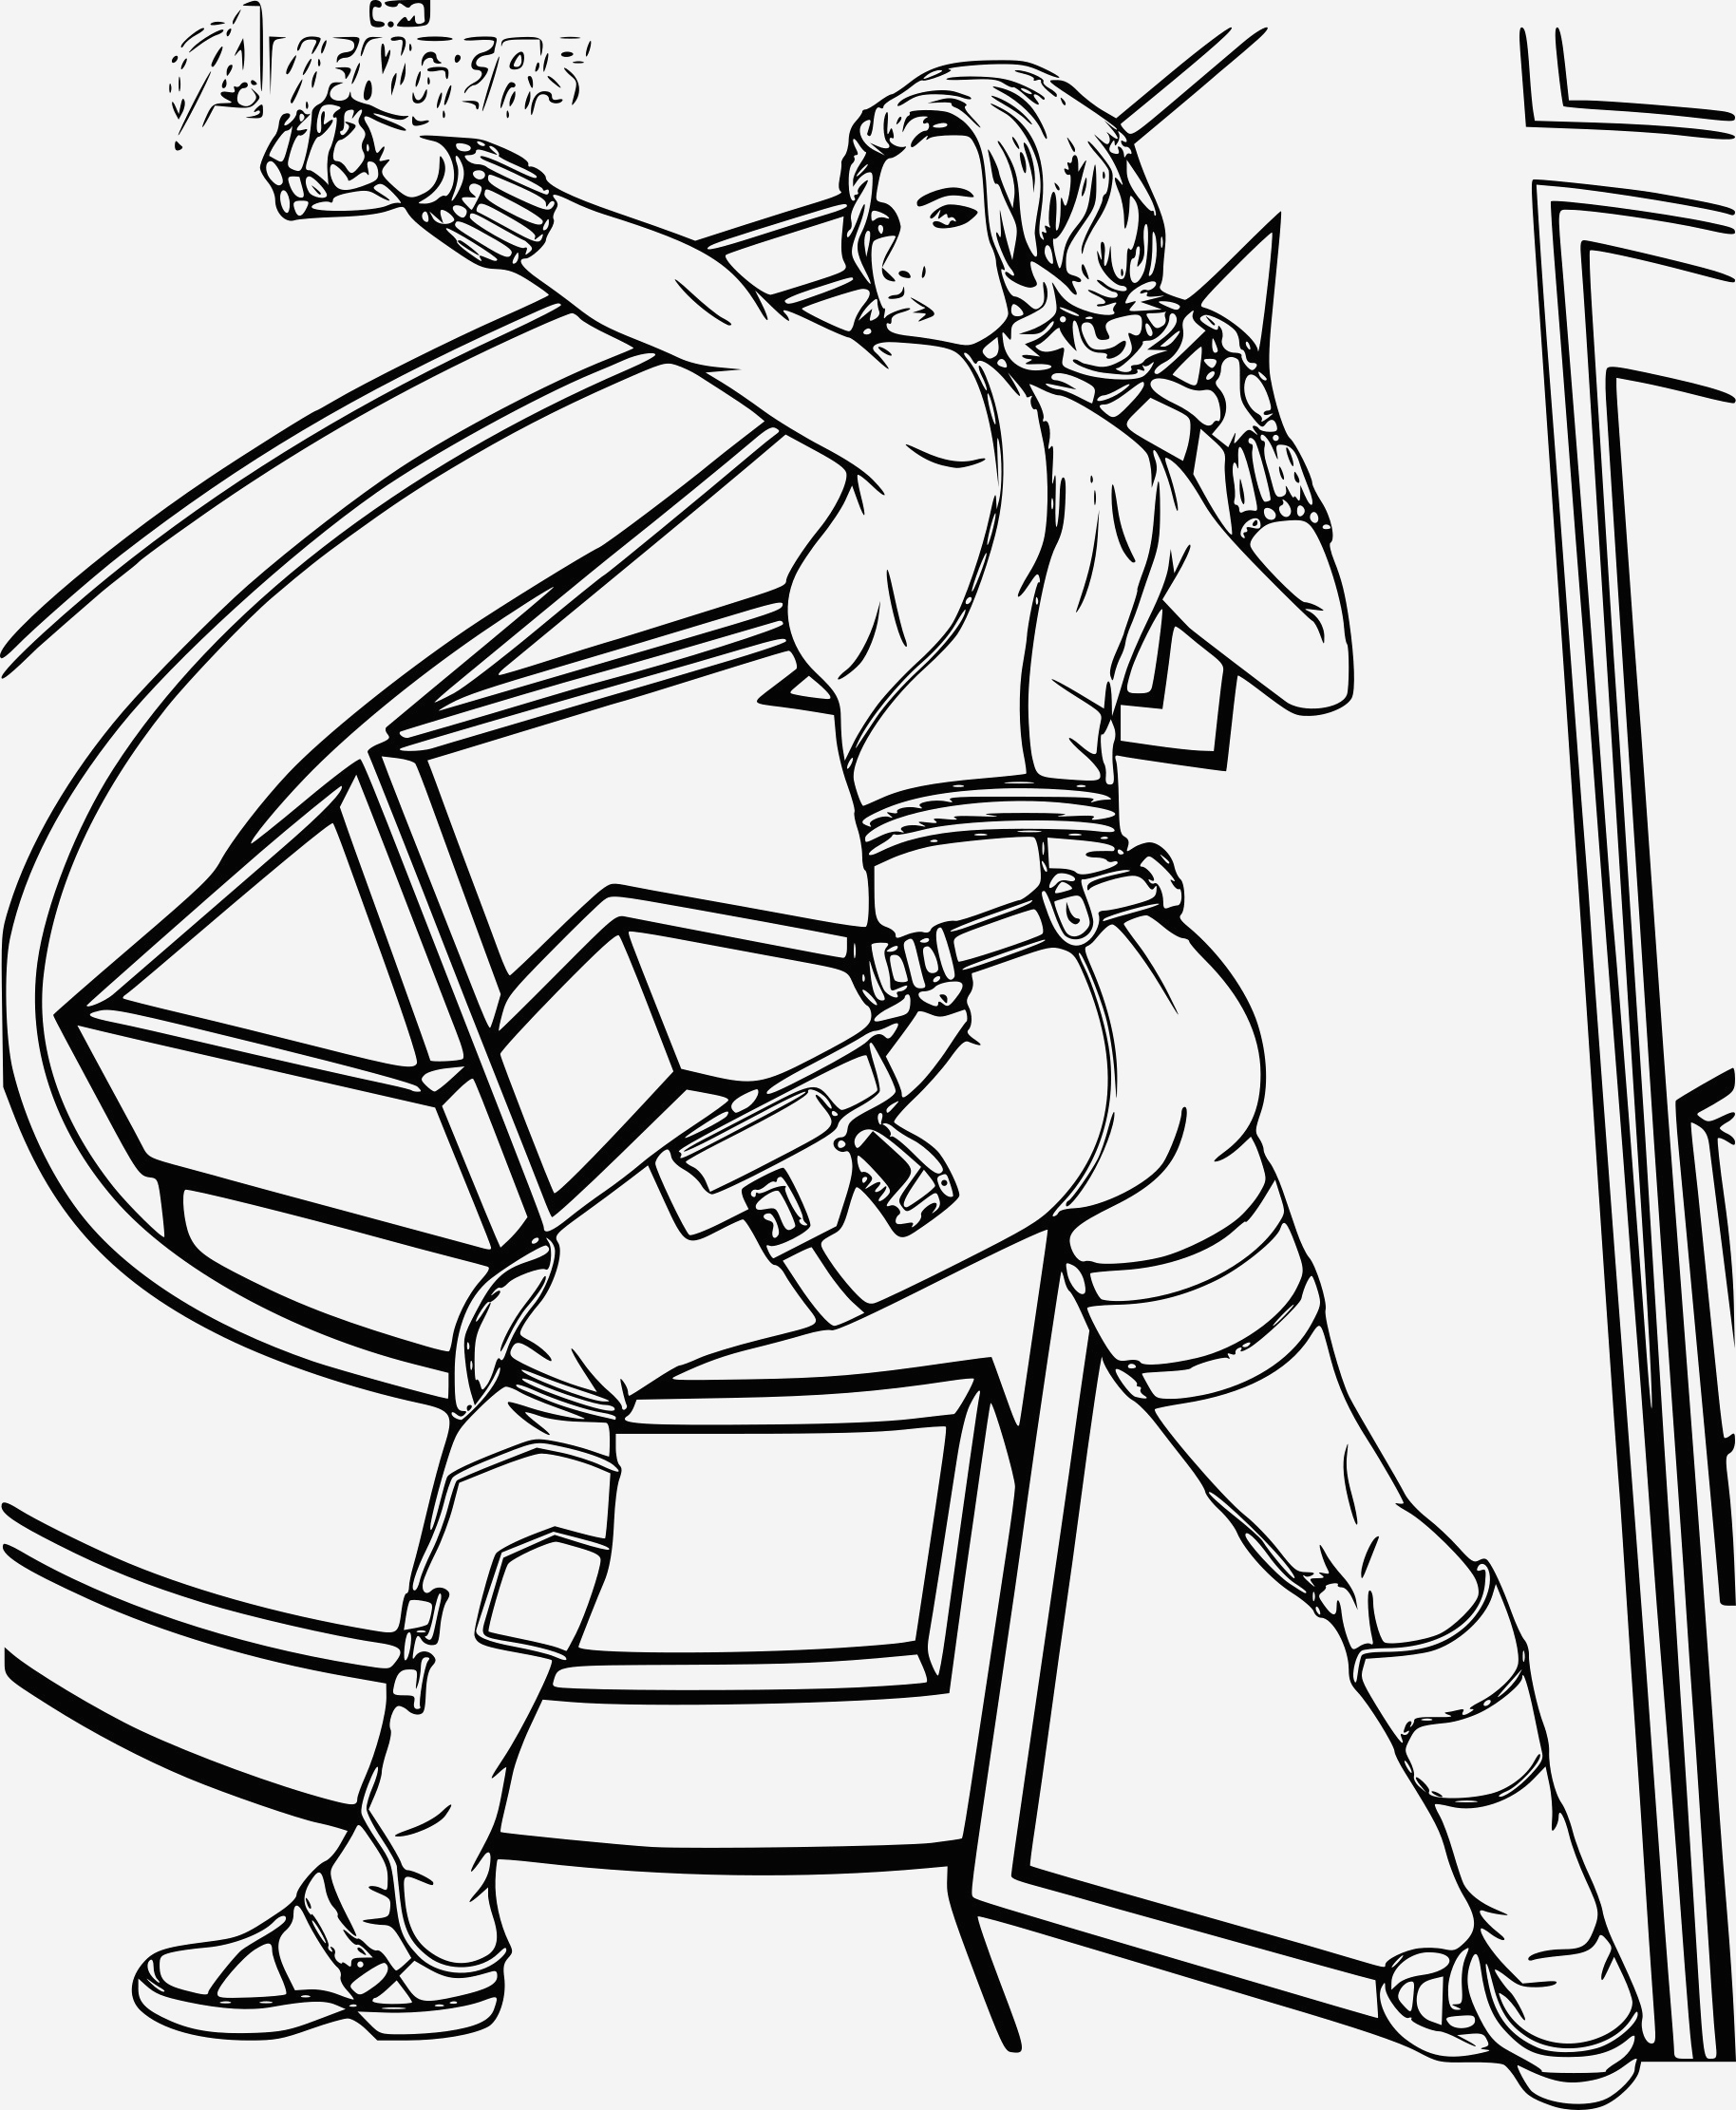 Coloriage Avengers à Imprimer Beautiful Coloriage Avengers Black Widow   Imprimer Of Coloriage Avengers à Imprimer